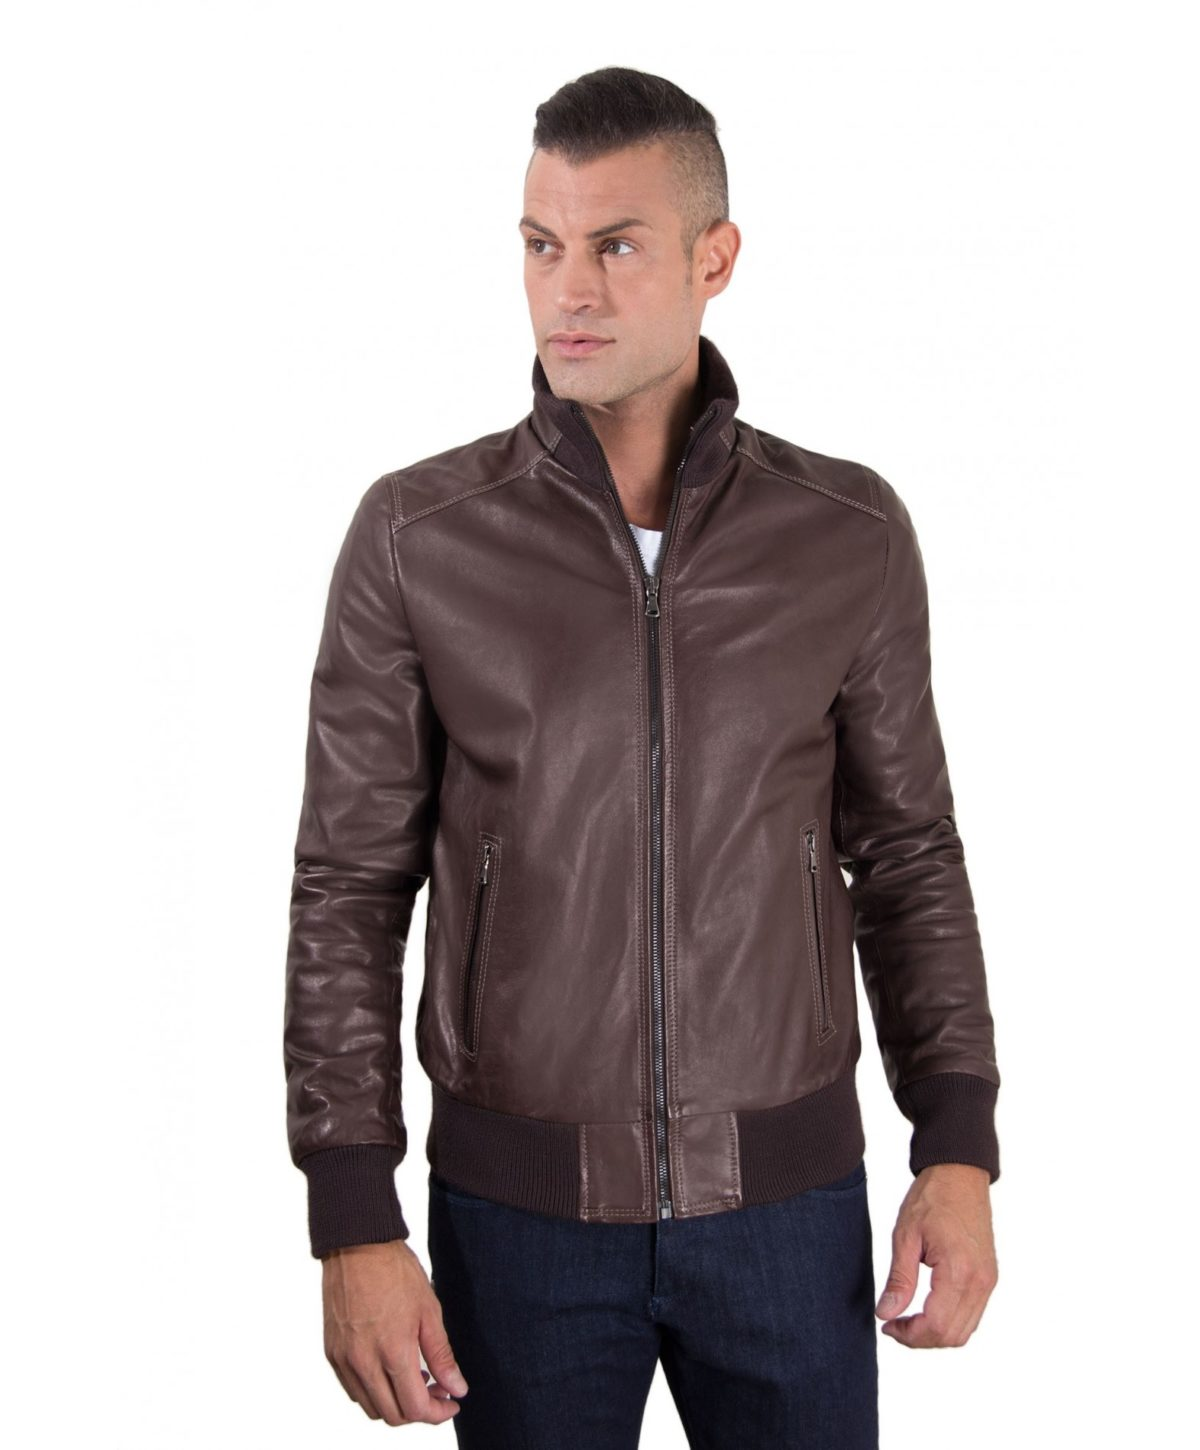 men-s-leather-jacket-contrasting-stitching-style-bomber-dark-brown-color-bomber